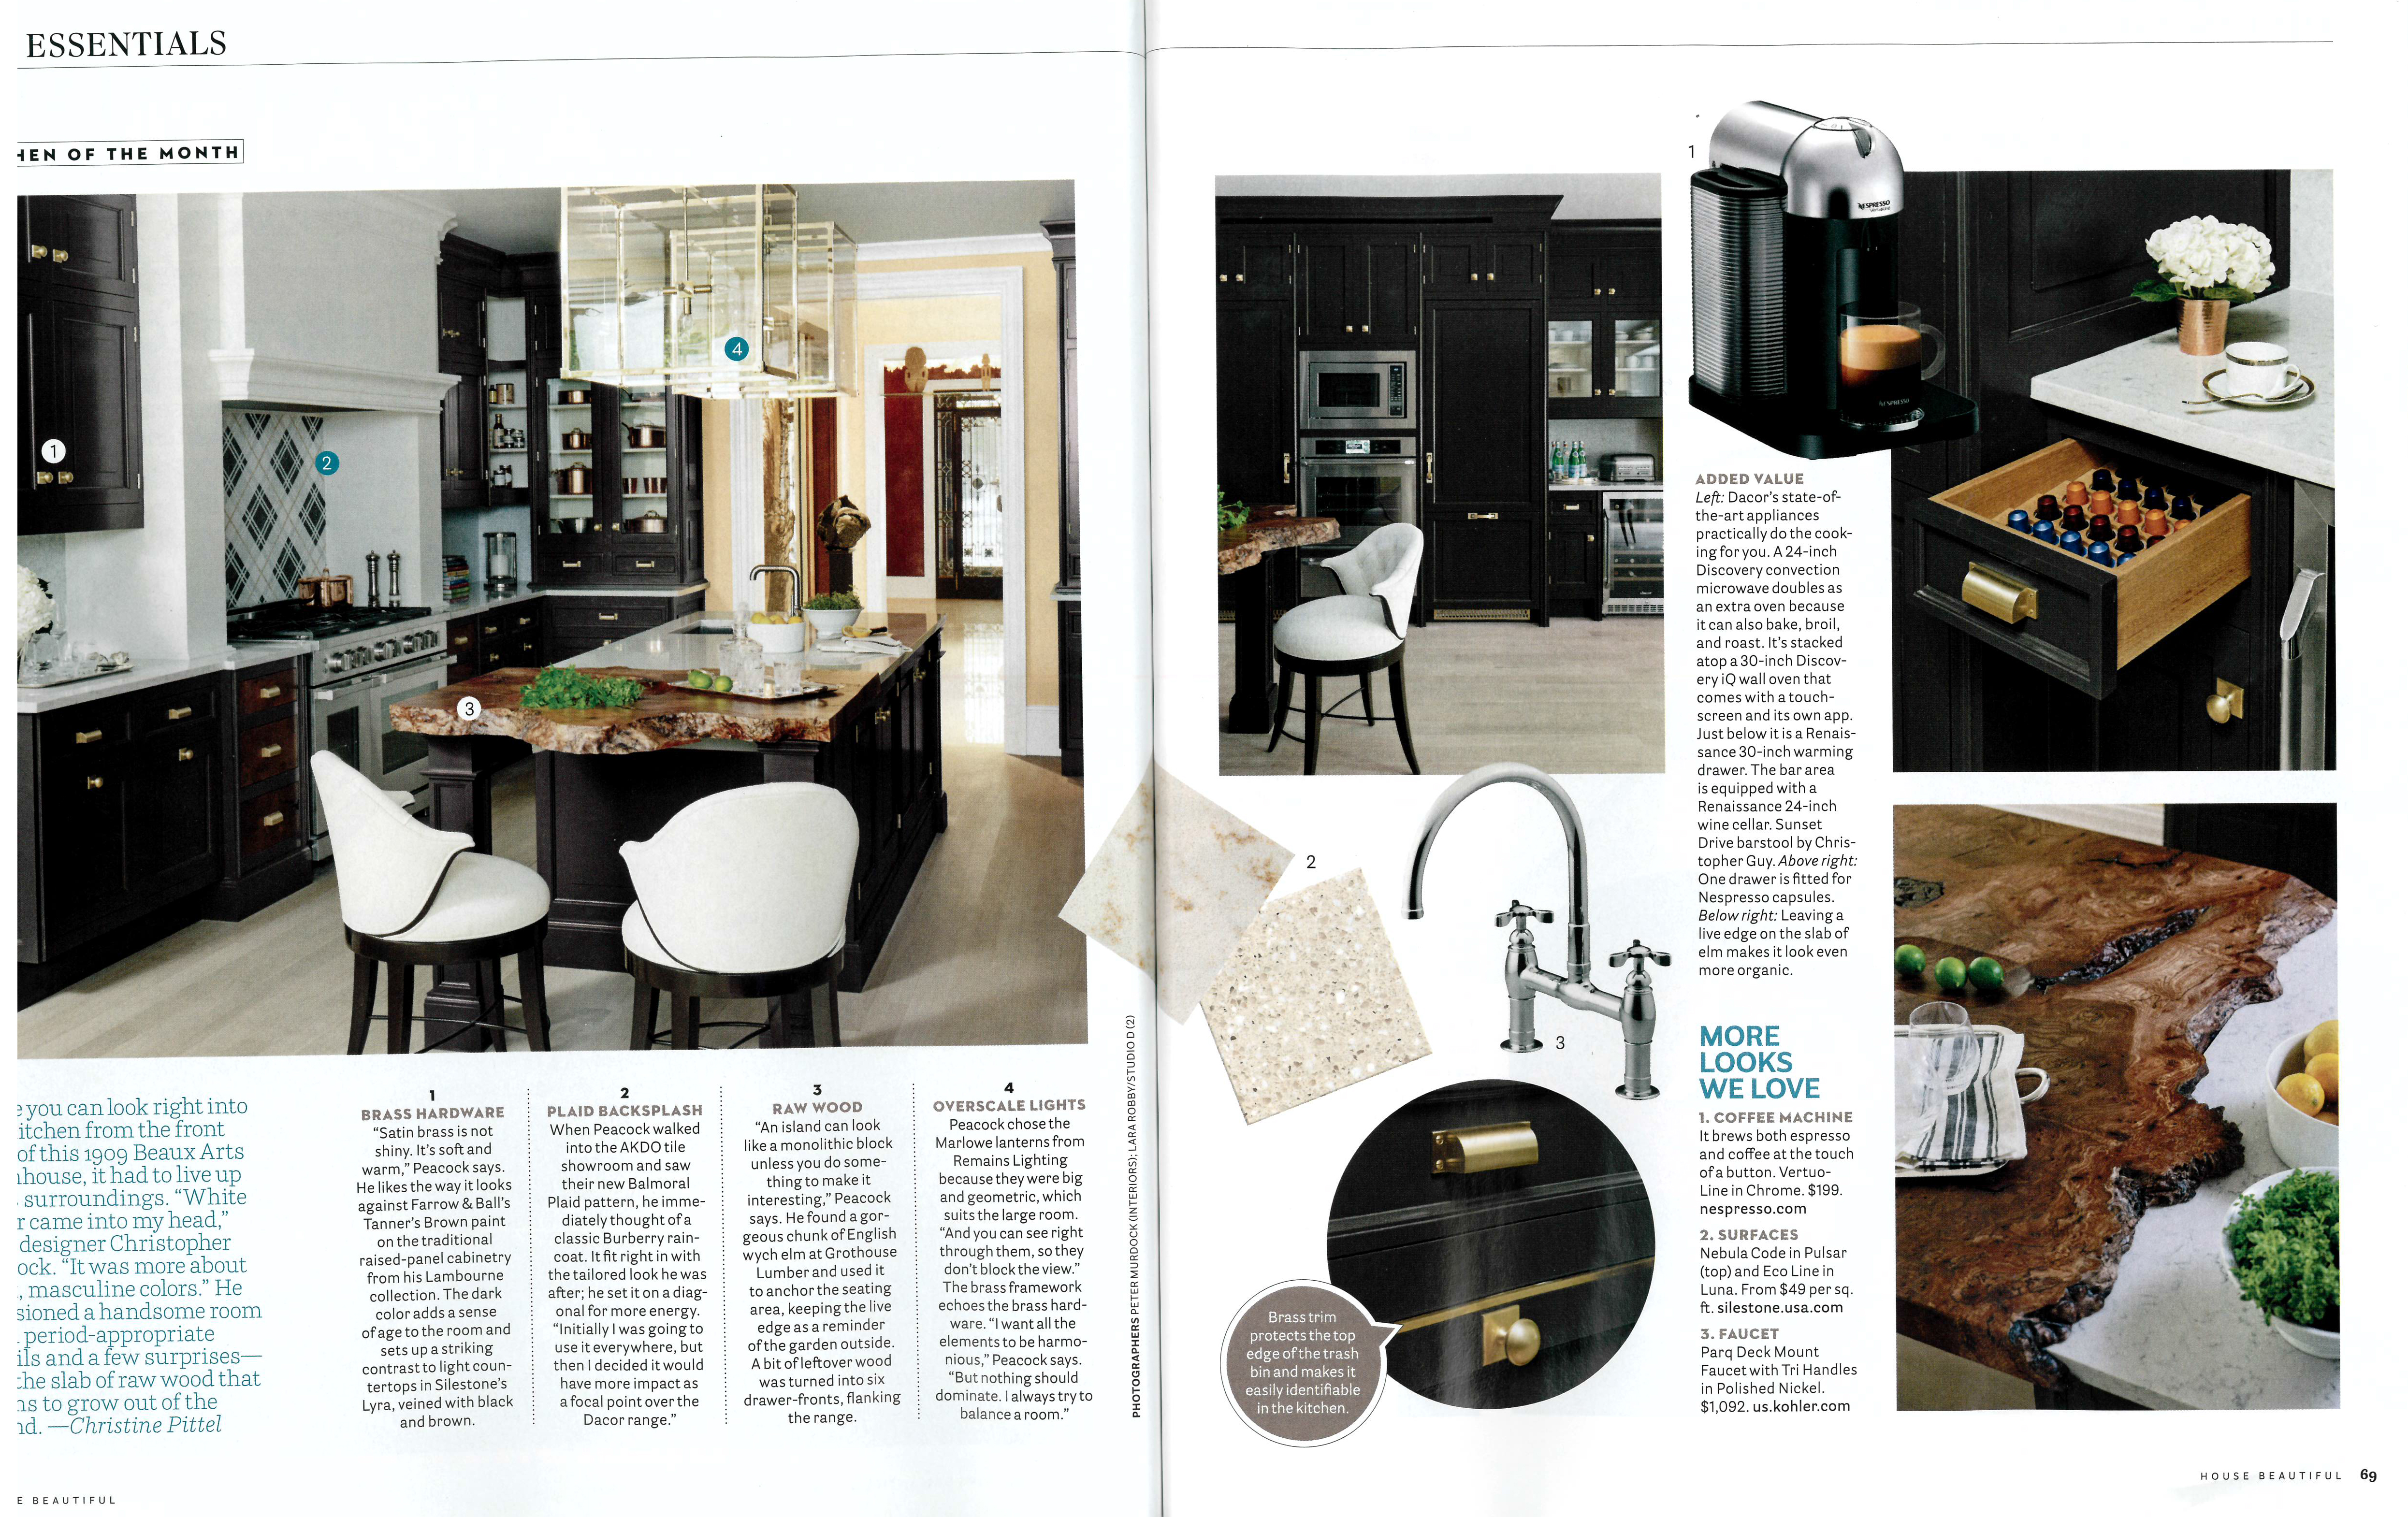 Kitchen designed by Christopher Peacock featured in the September 2015 House Beautiful Magazine